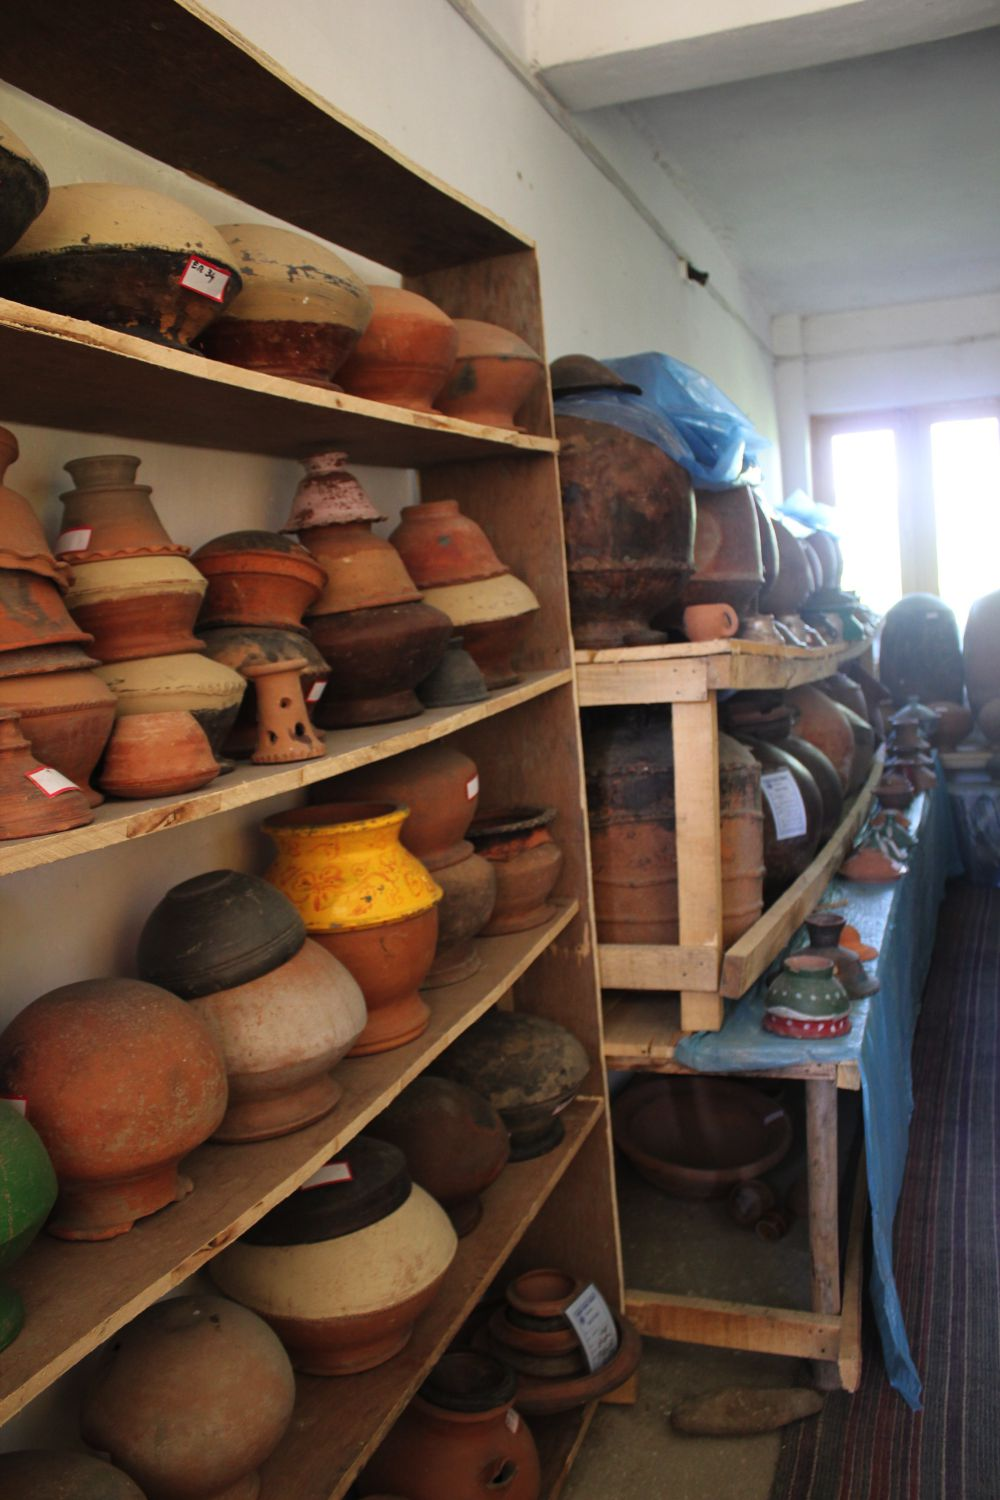 A collection of ancient pots and containers in which food and other items were stored. Credit: Bhavneet Kaur